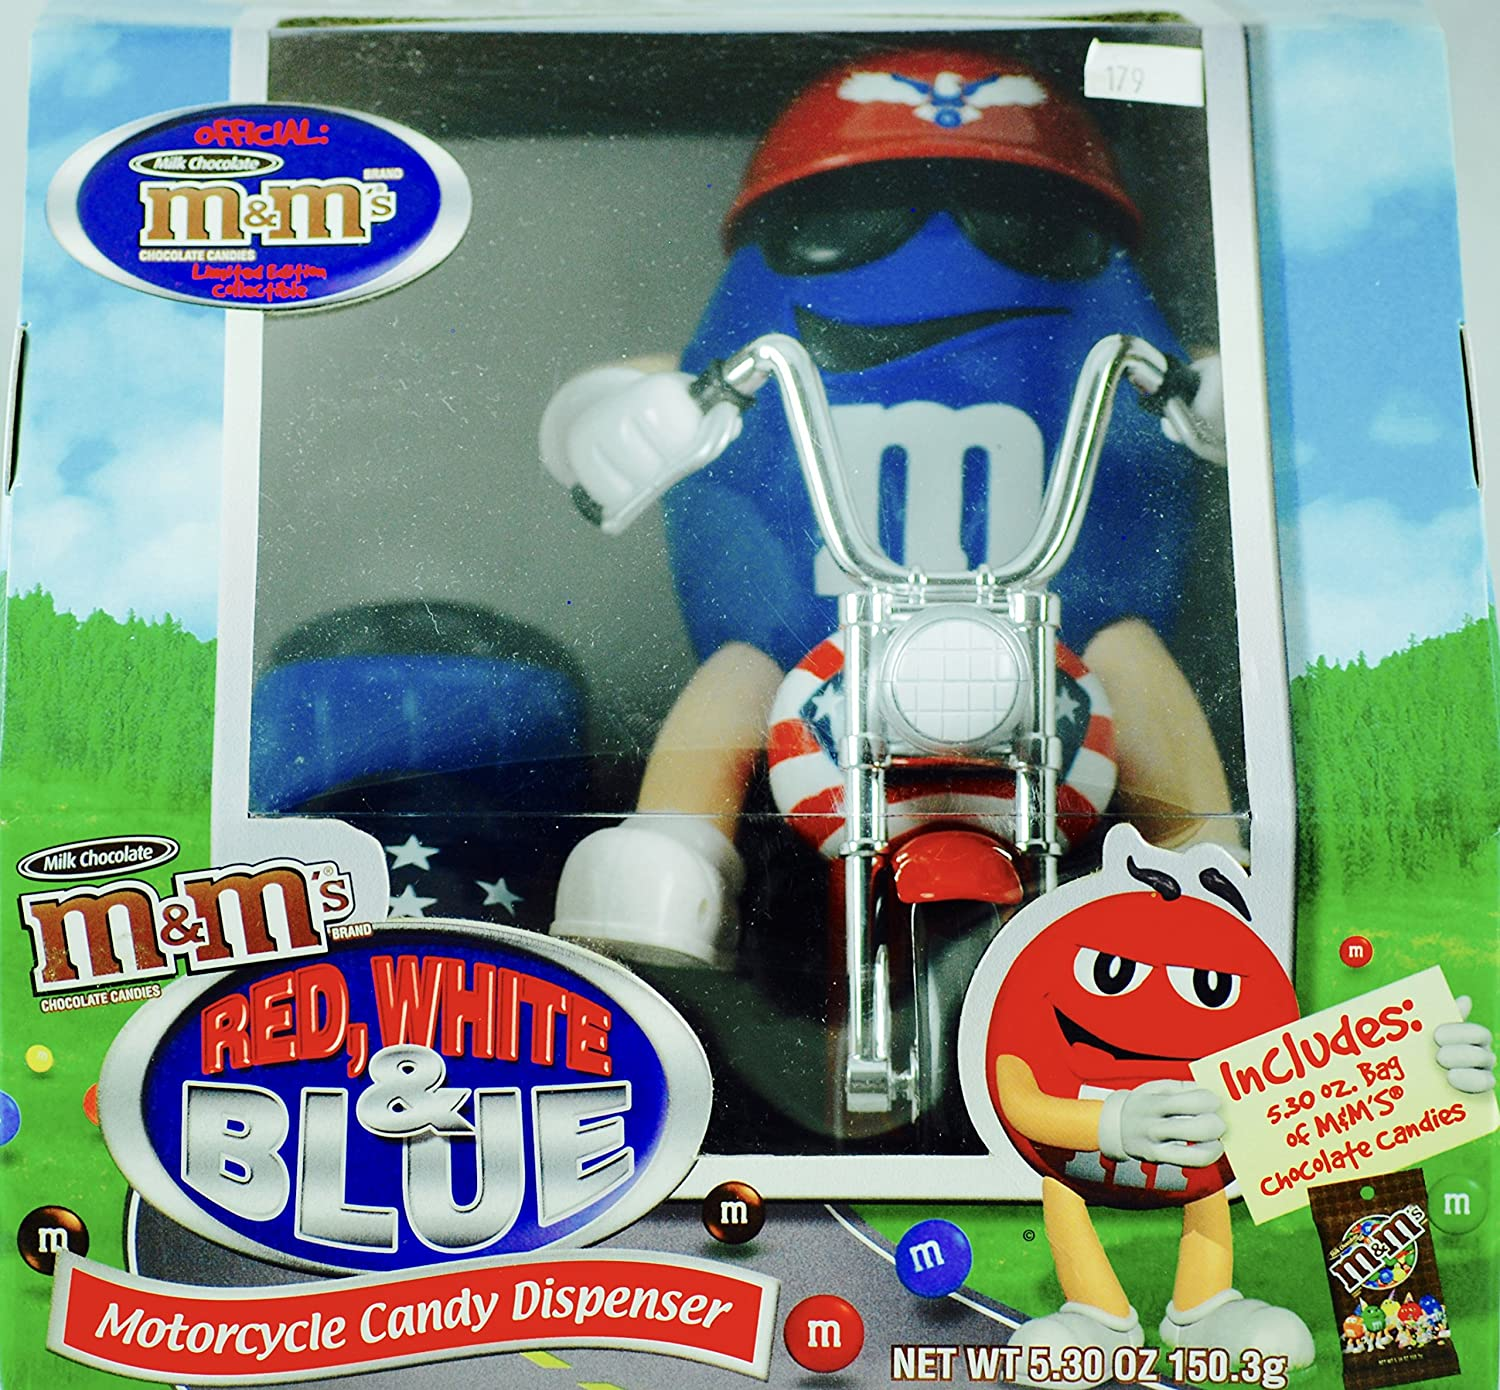 M&m's Candy Dispenser - Red, White & bluee